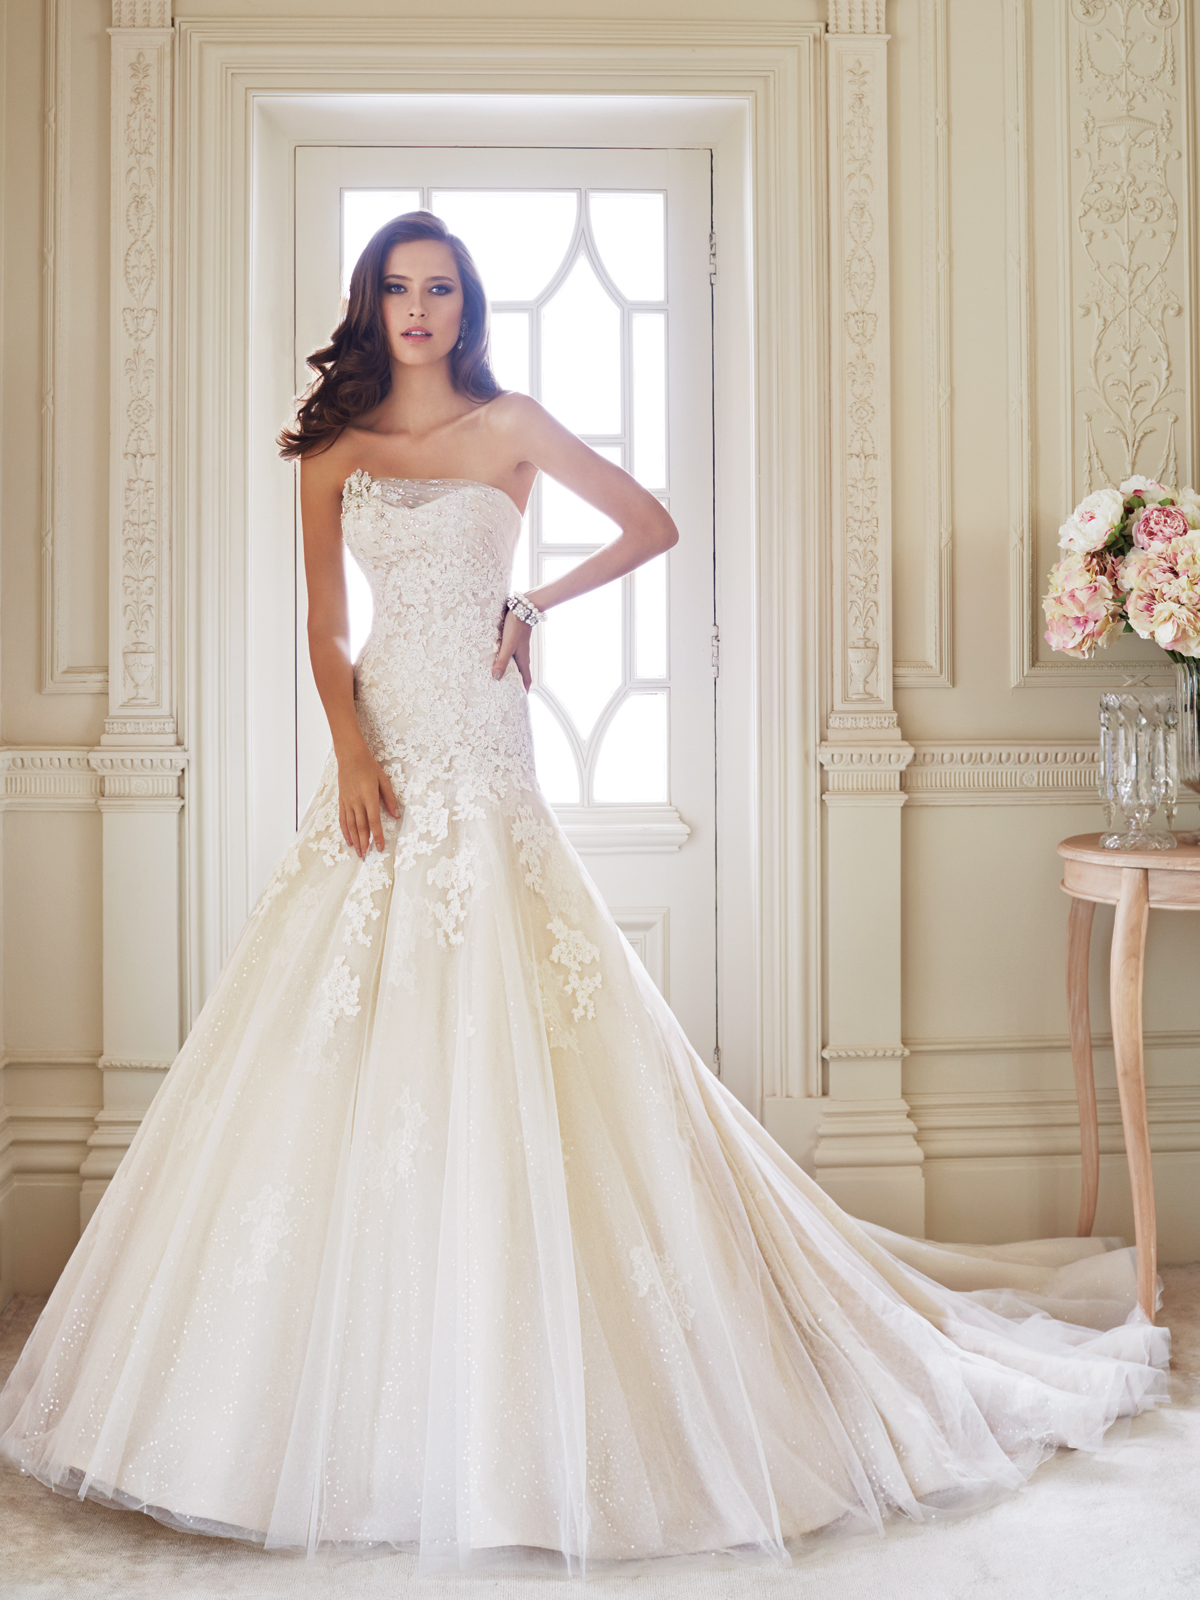 Sophia tolli wedding dresses 2014 collection modwedding sophia tolli wedding dresses 1 06212014nz junglespirit Image collections